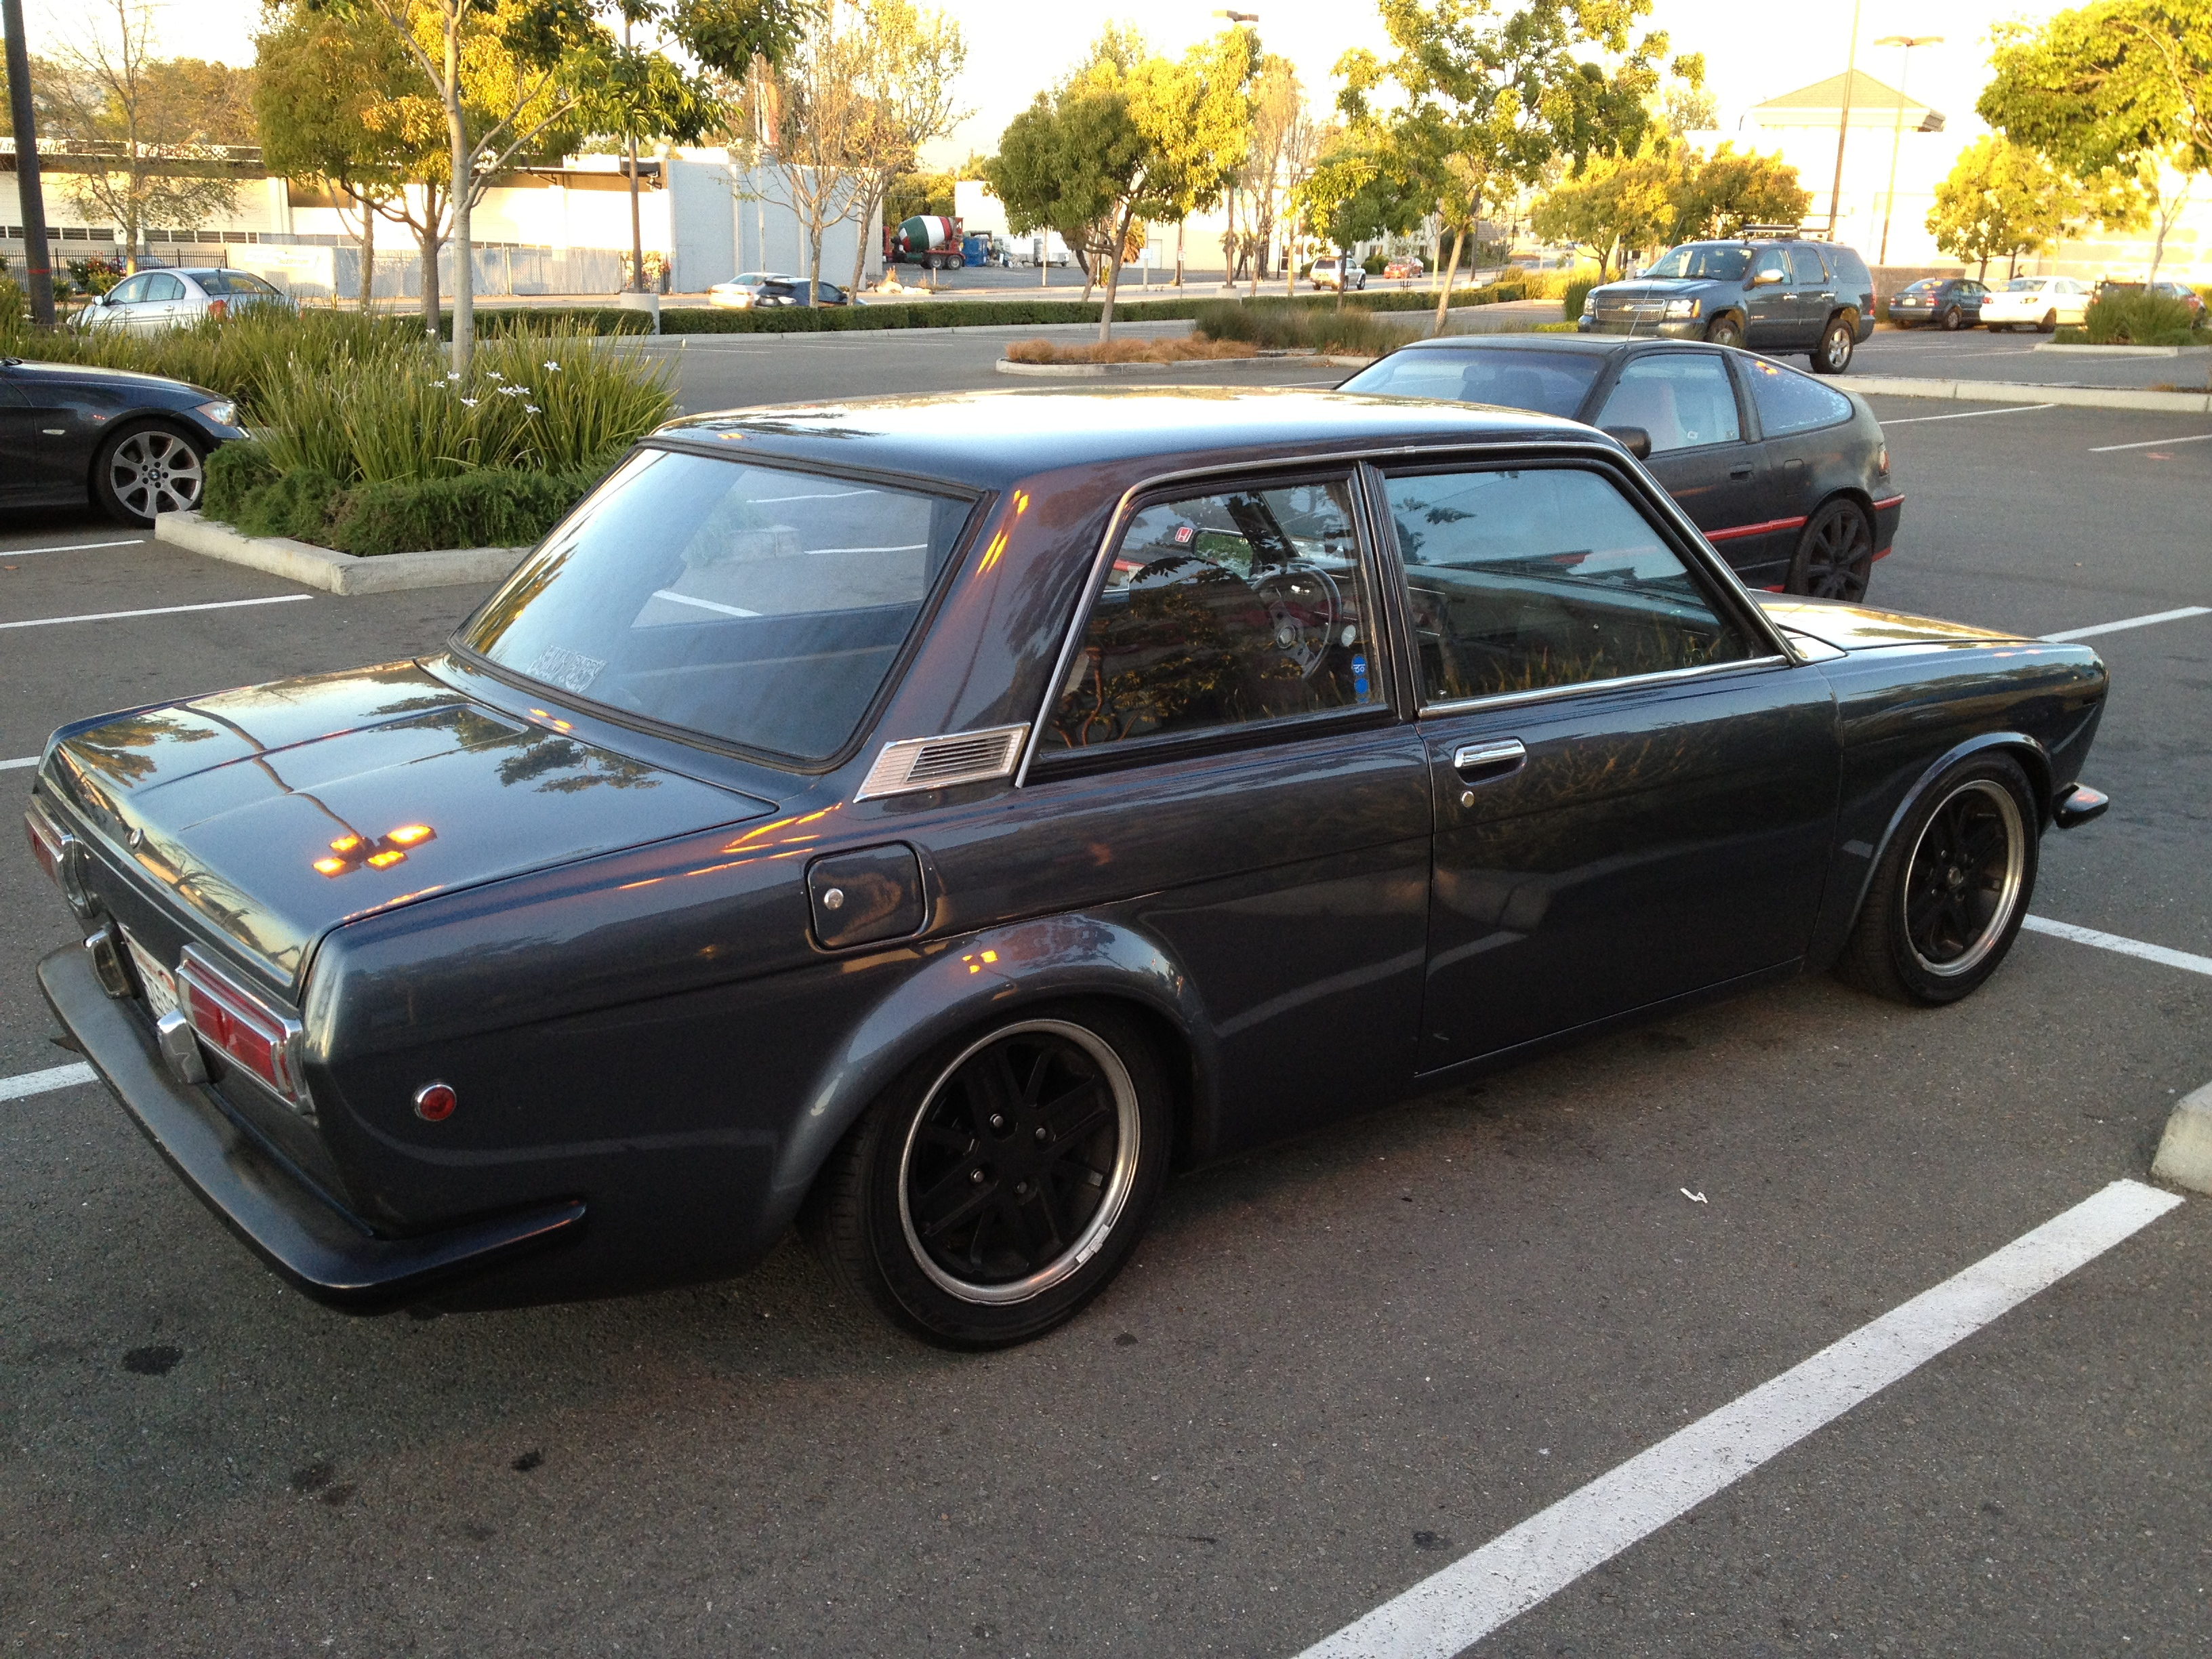 And a gunmetal gray 1969 datsun 510 pulls up just as i do the same